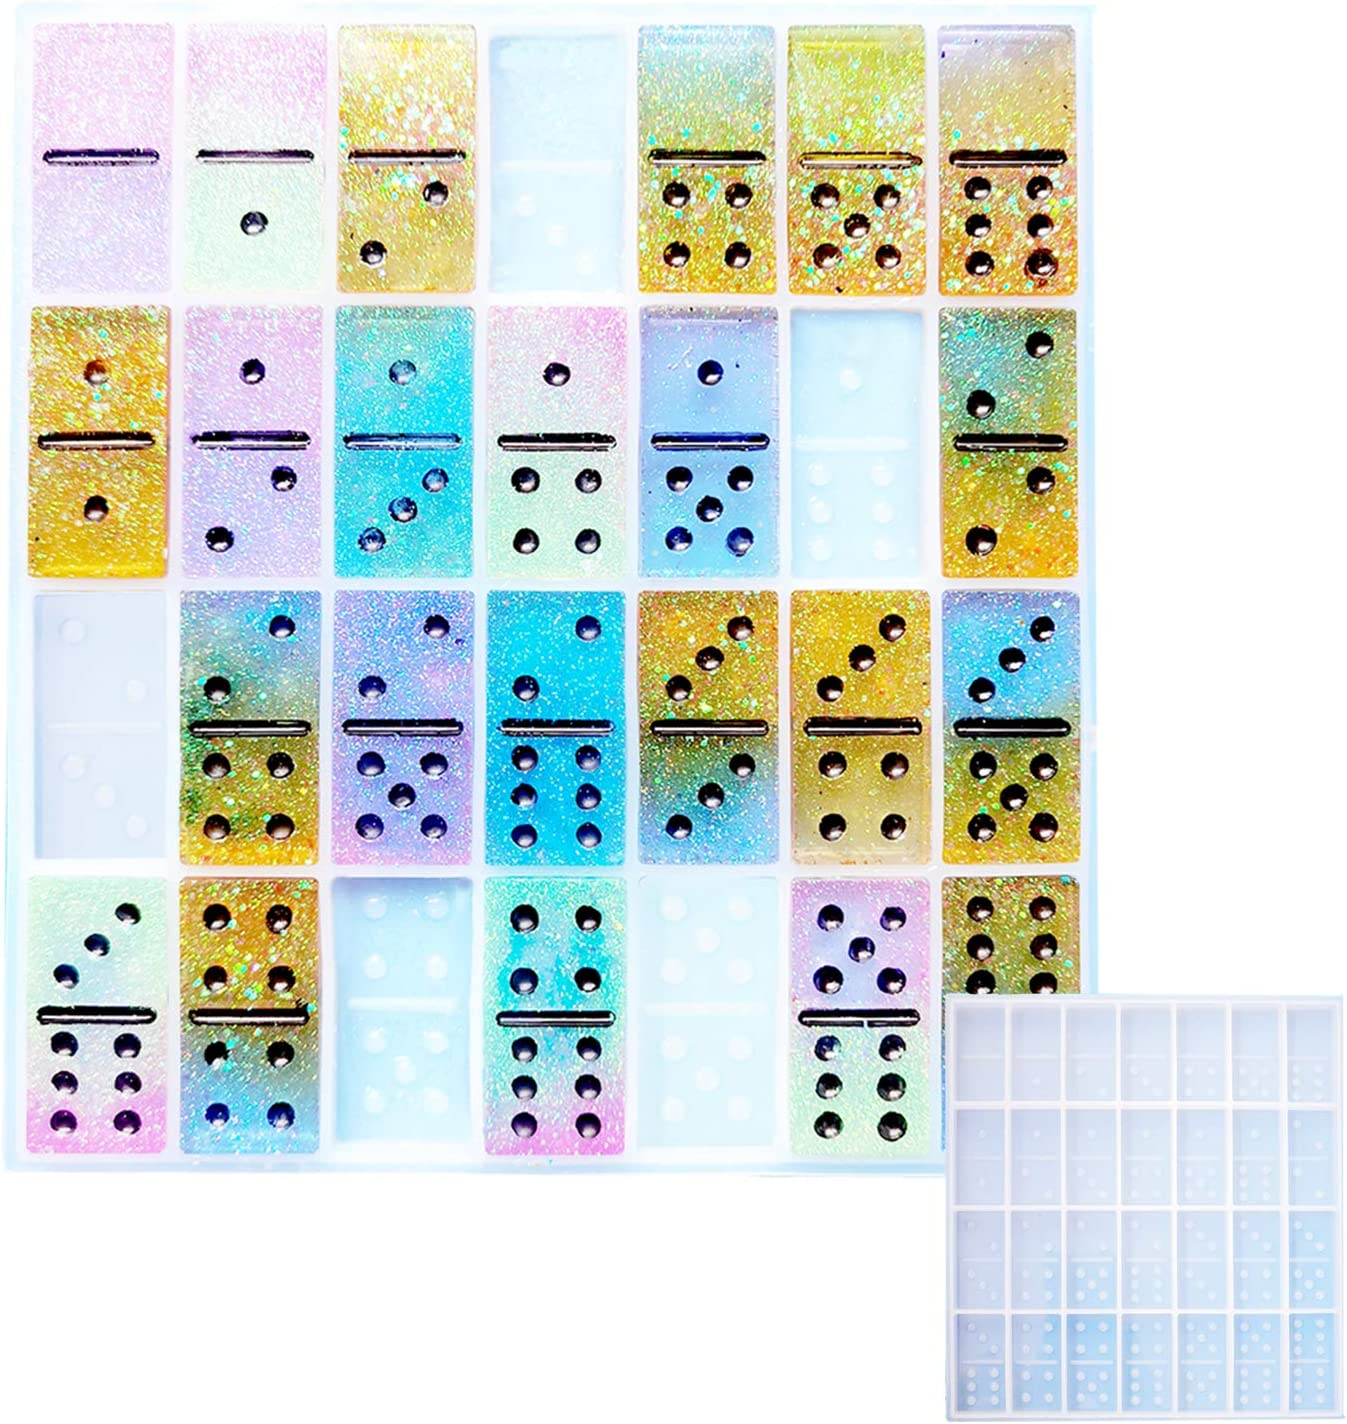 SXLFY Domino Resin Molds,DIY 1 Set ,Pyr Max 68% Manufacturer OFFicial shop OFF 28 of Cavities